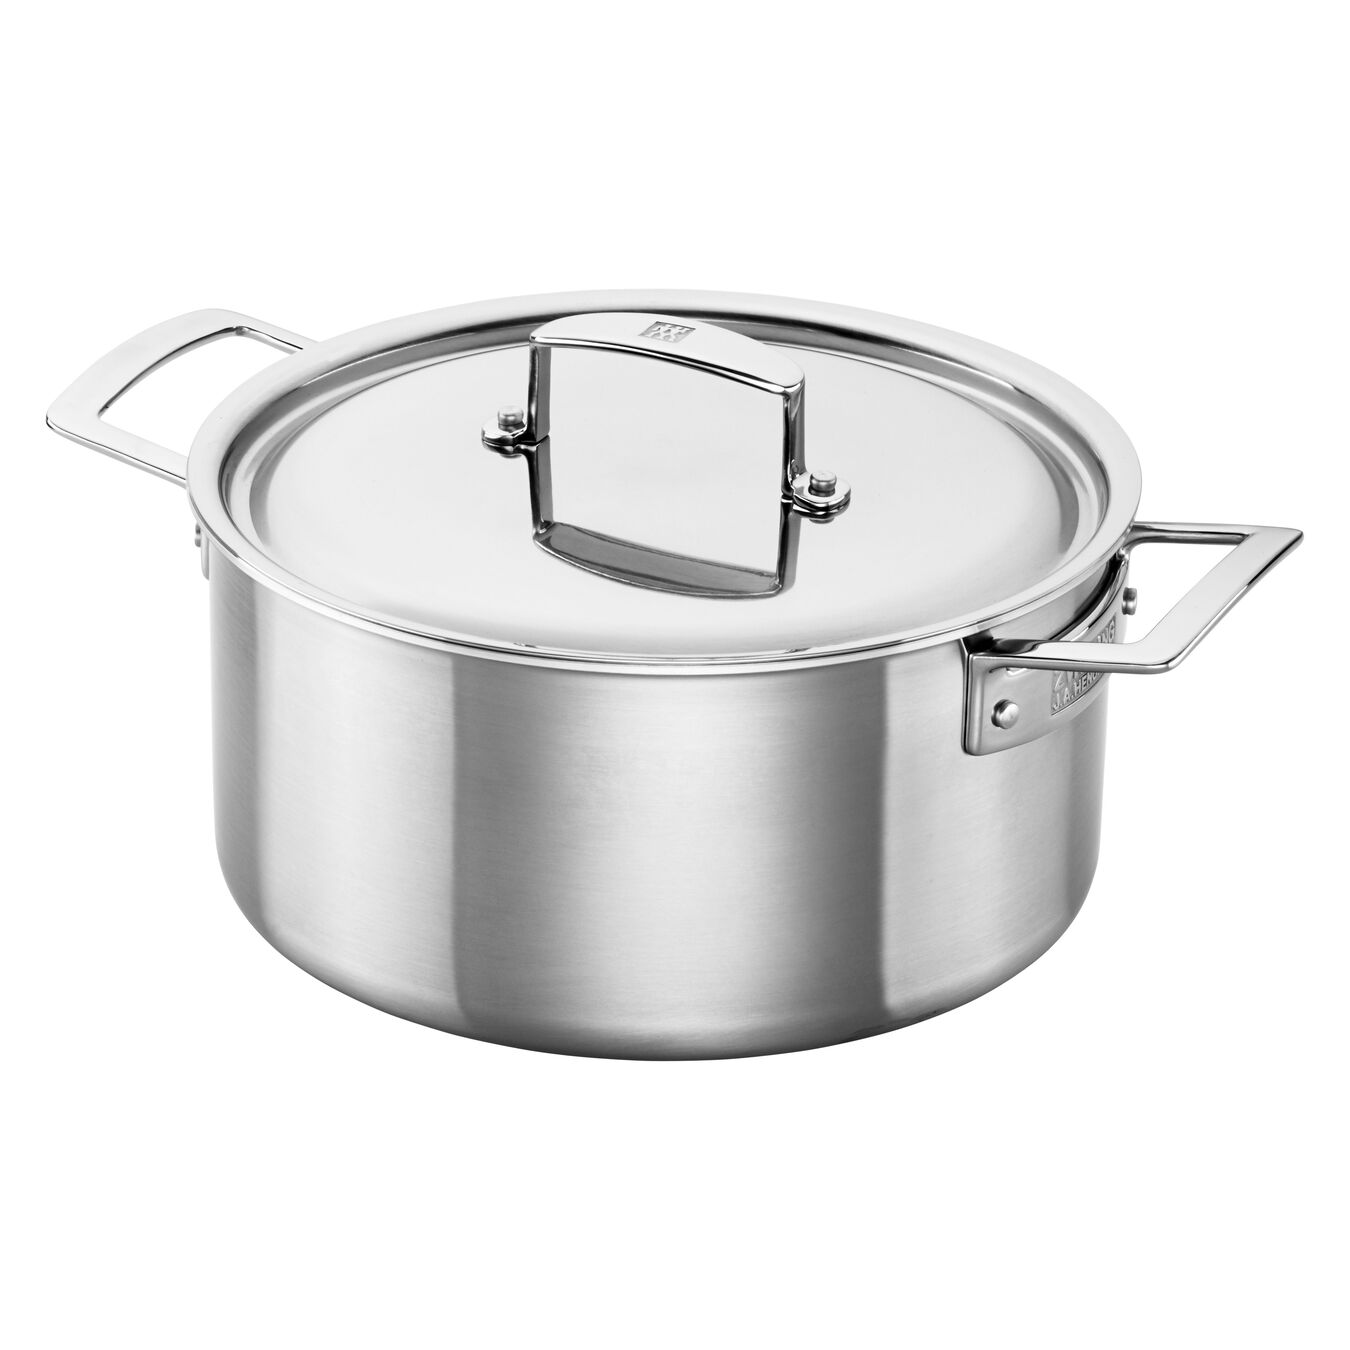 Stainless Steel 7-Piece Cookware Set,,large 2